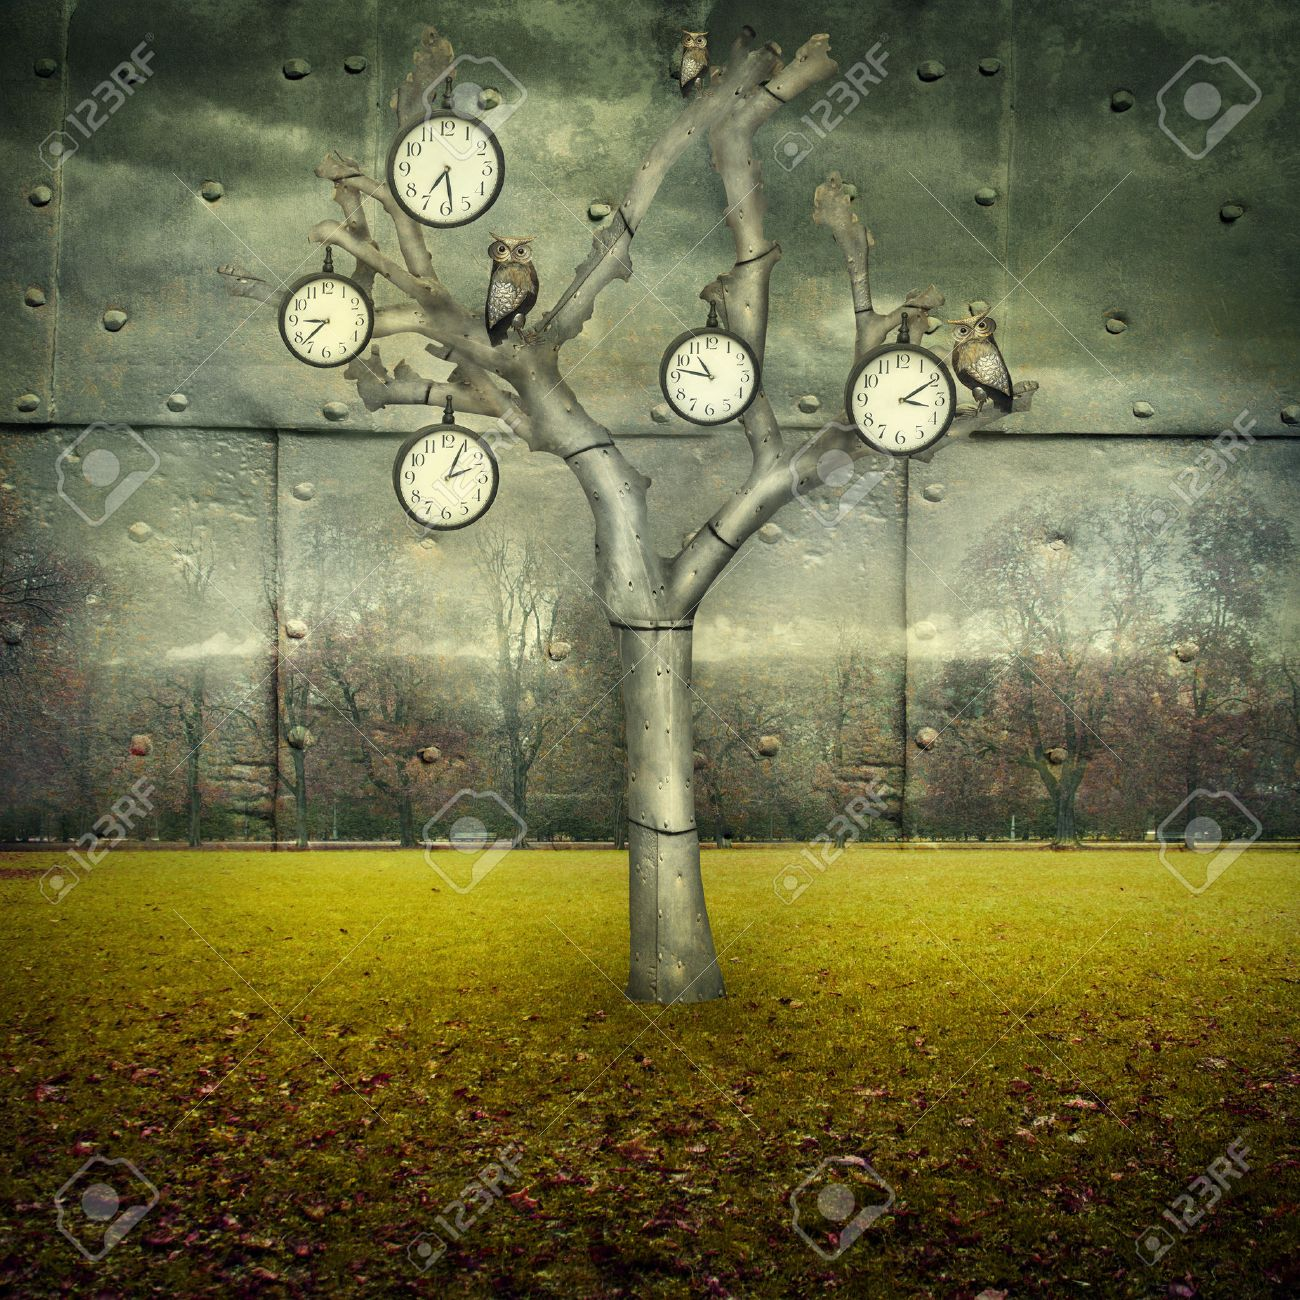 Surreal illustration of many clock and small mechanical owls on a tree and scattered in a mechanic landscape - 41301074